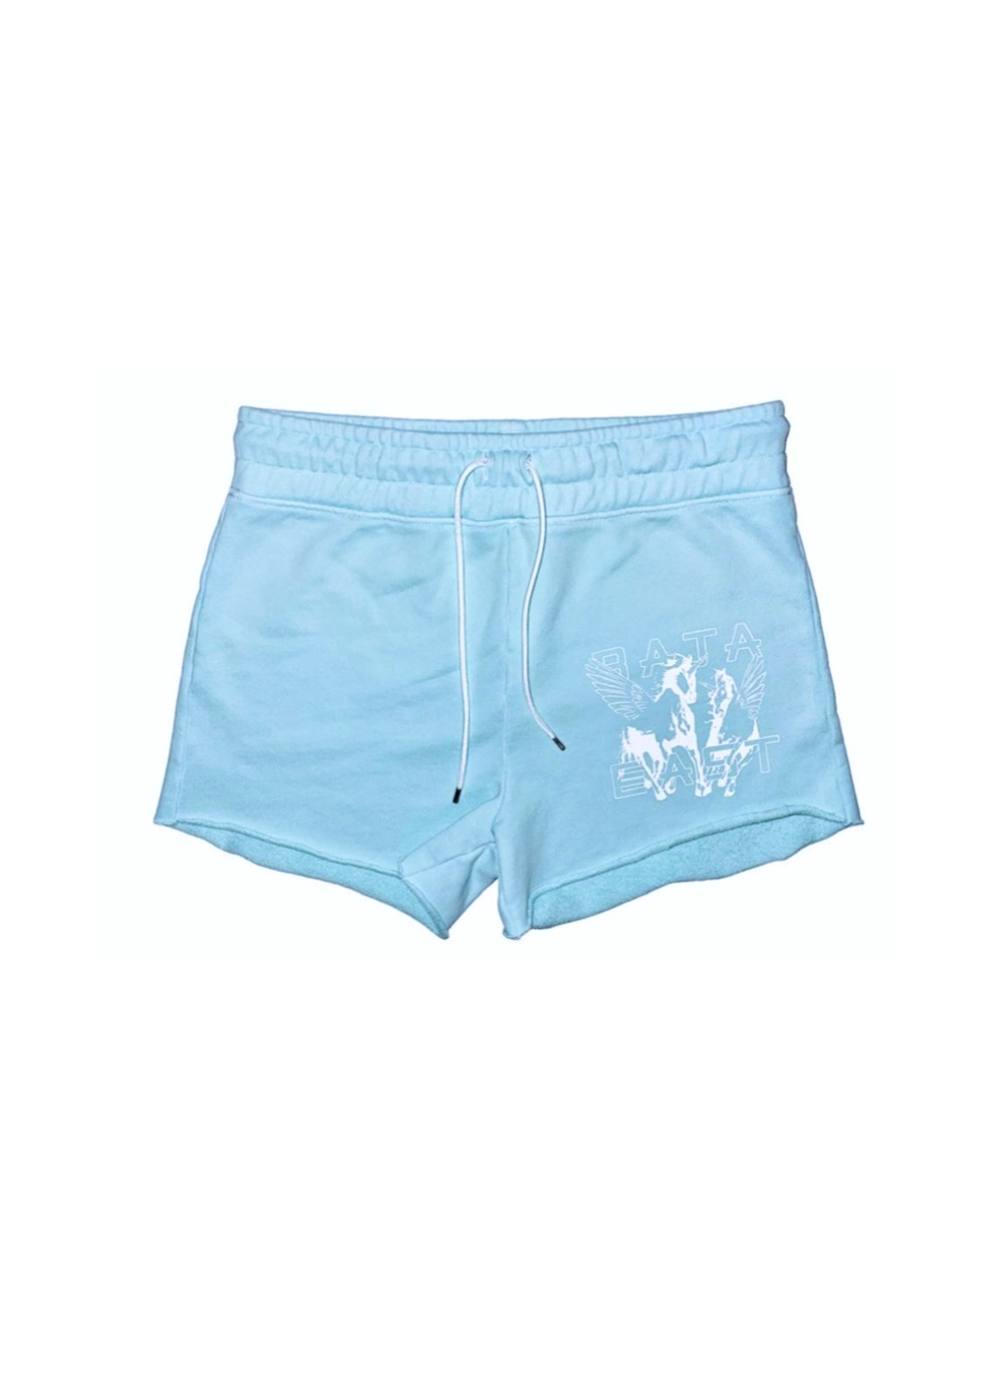 HOT SHORTS WITH FLYING UNICORNS IN BABY BLUE by Baja East, available on bajaeast.com for $145 Alessandra Ambrosio Shorts Exact Product